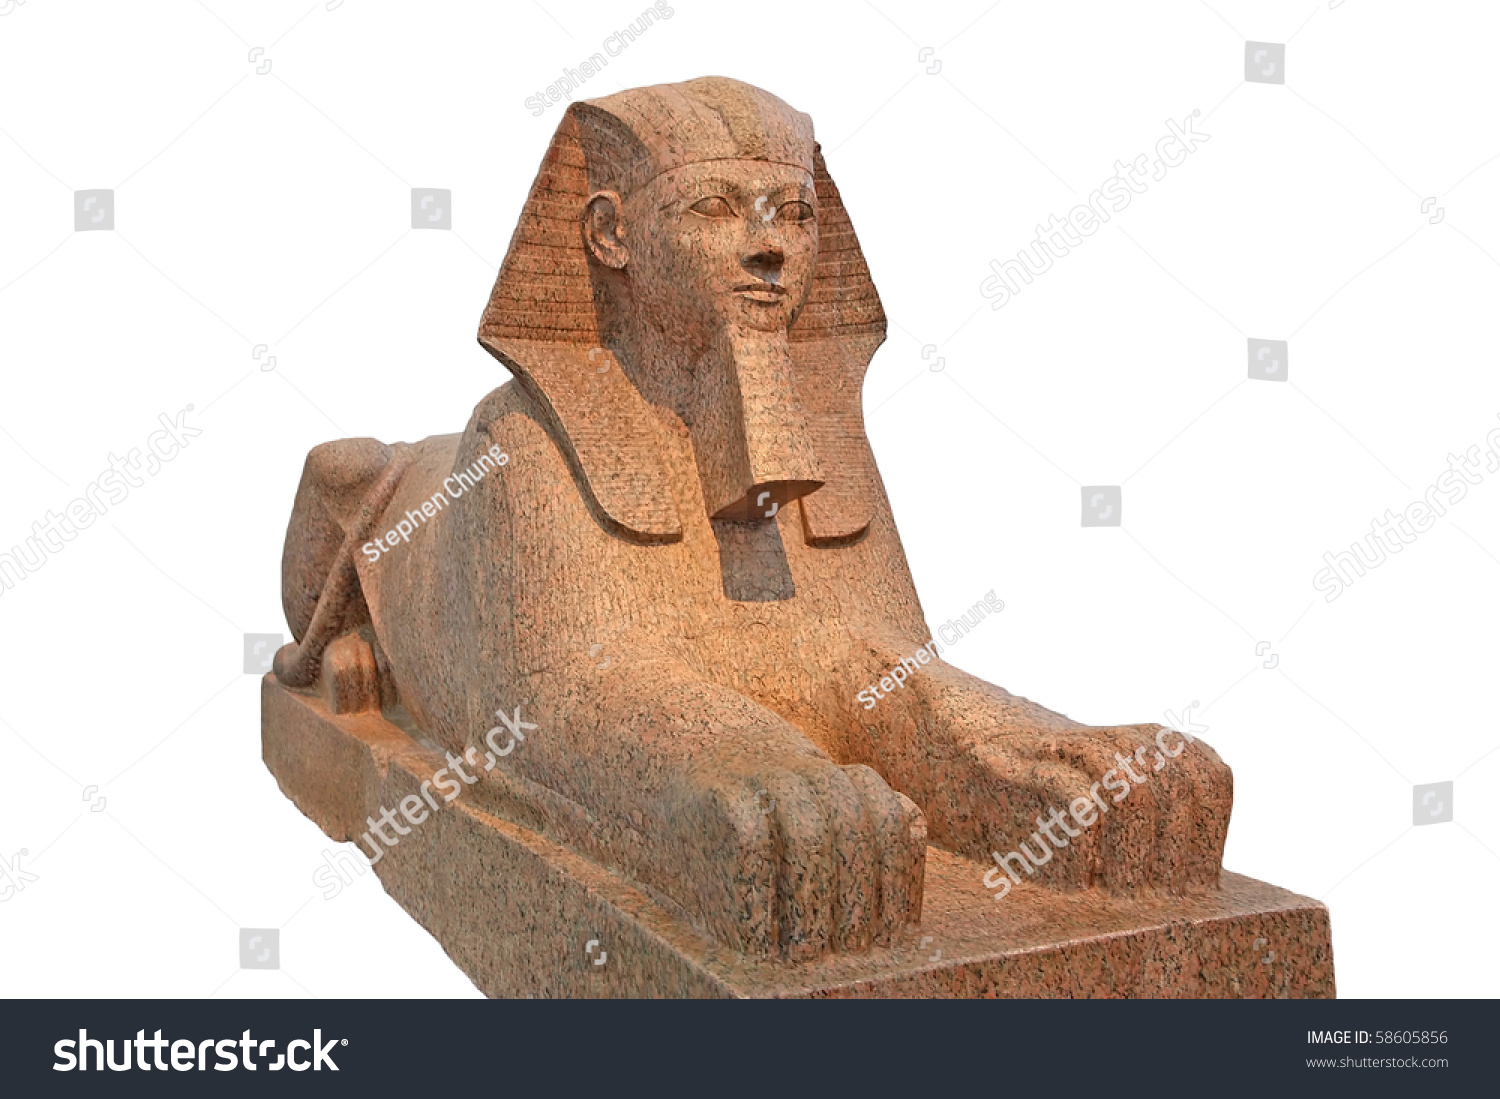 worksheet Sphinx Statue egyptian sphinx statue isolated stock photo 58605856 shutterstock isolated